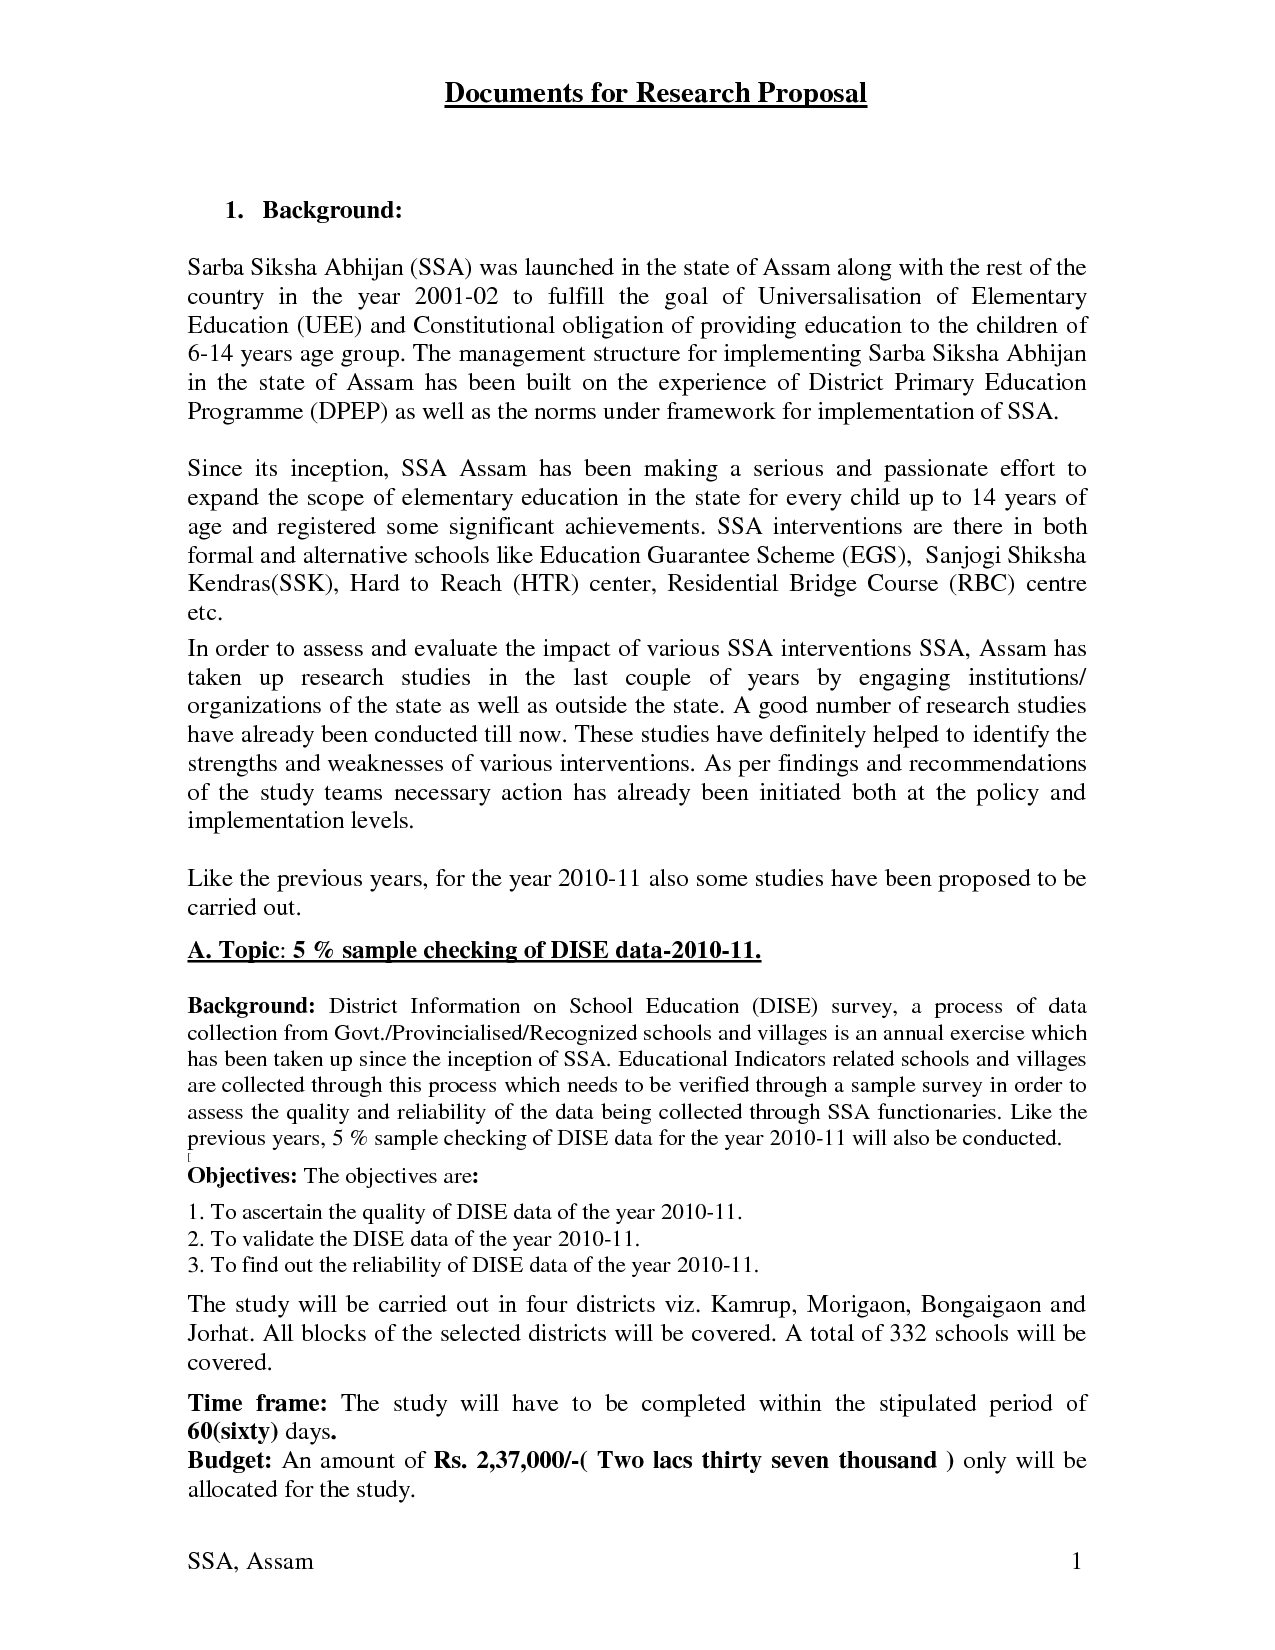 003 Fkelpdgbog Research Paper Free Science Papers Singular Online Full